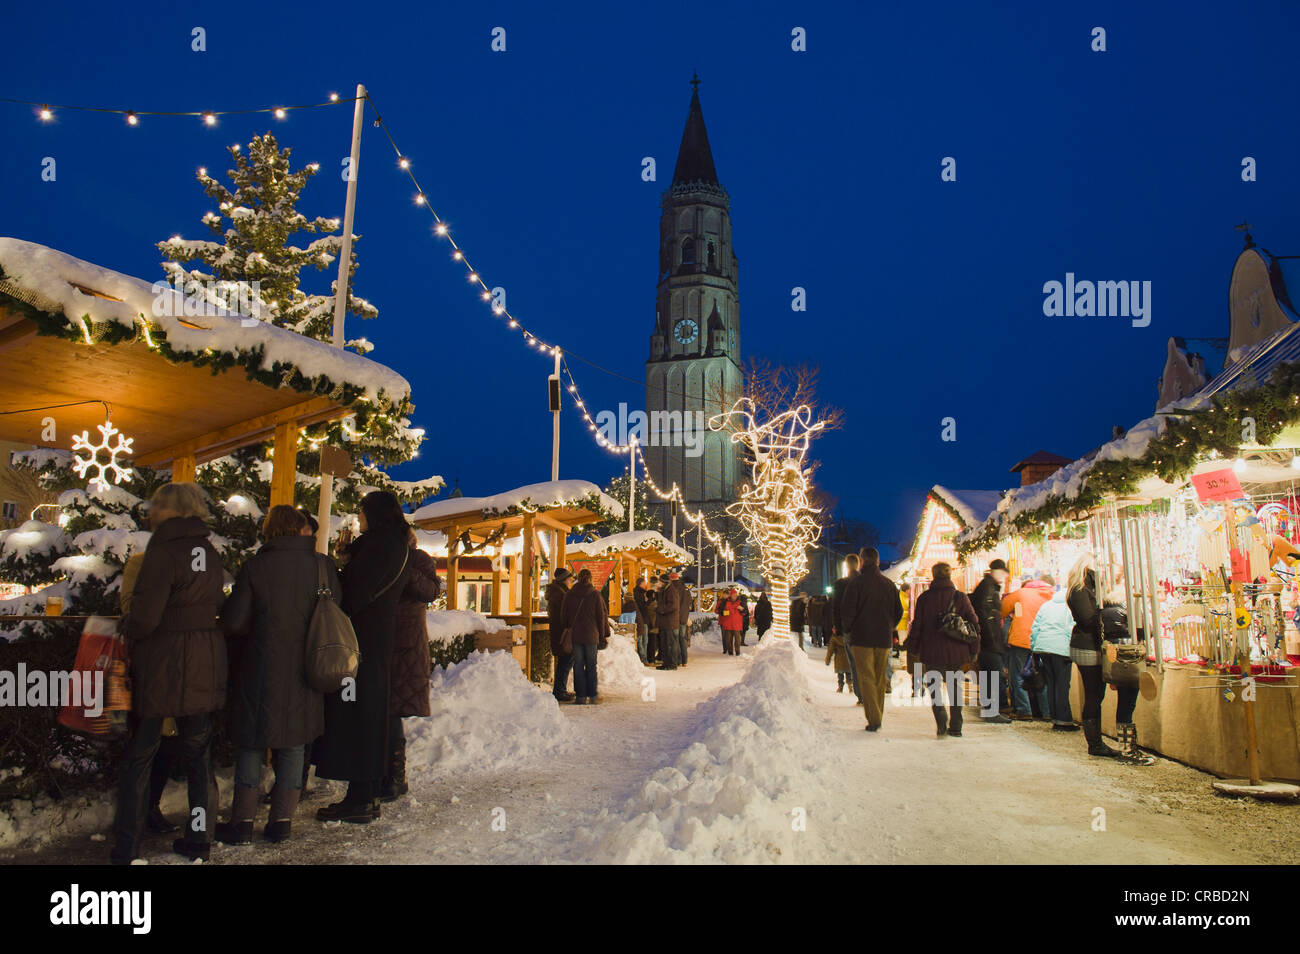 Christmas markets in winter, Landshut, Lower Bavaria, Bavaria, Germany, Europe - Stock Image